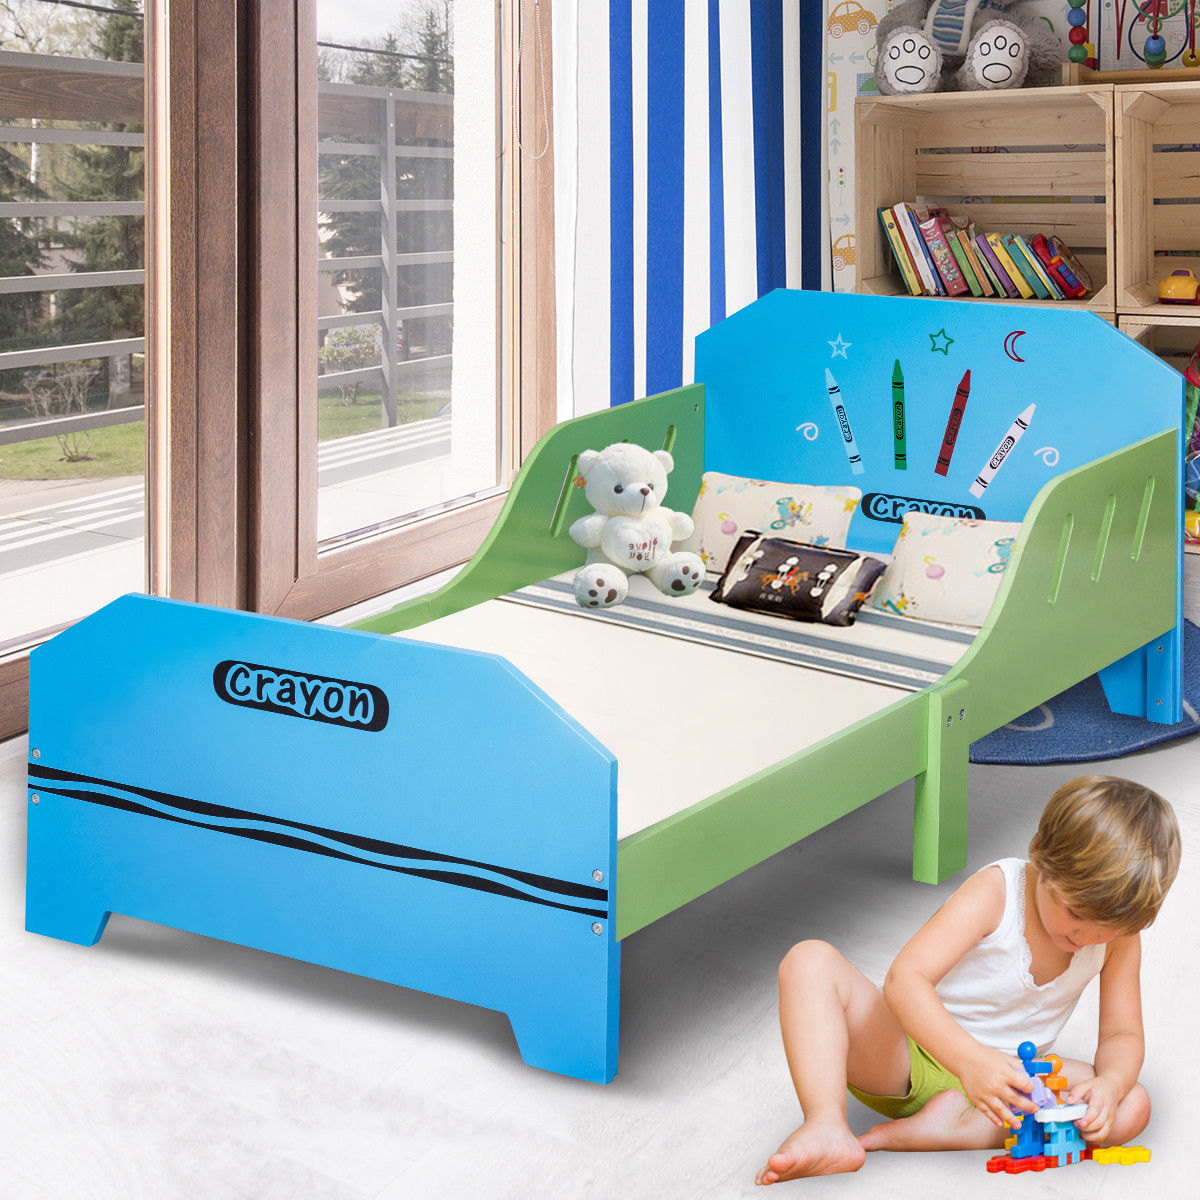 Gymax Crayon Themed Wood Kids Bed with Bed Rails for Toddlers and Children Colorful